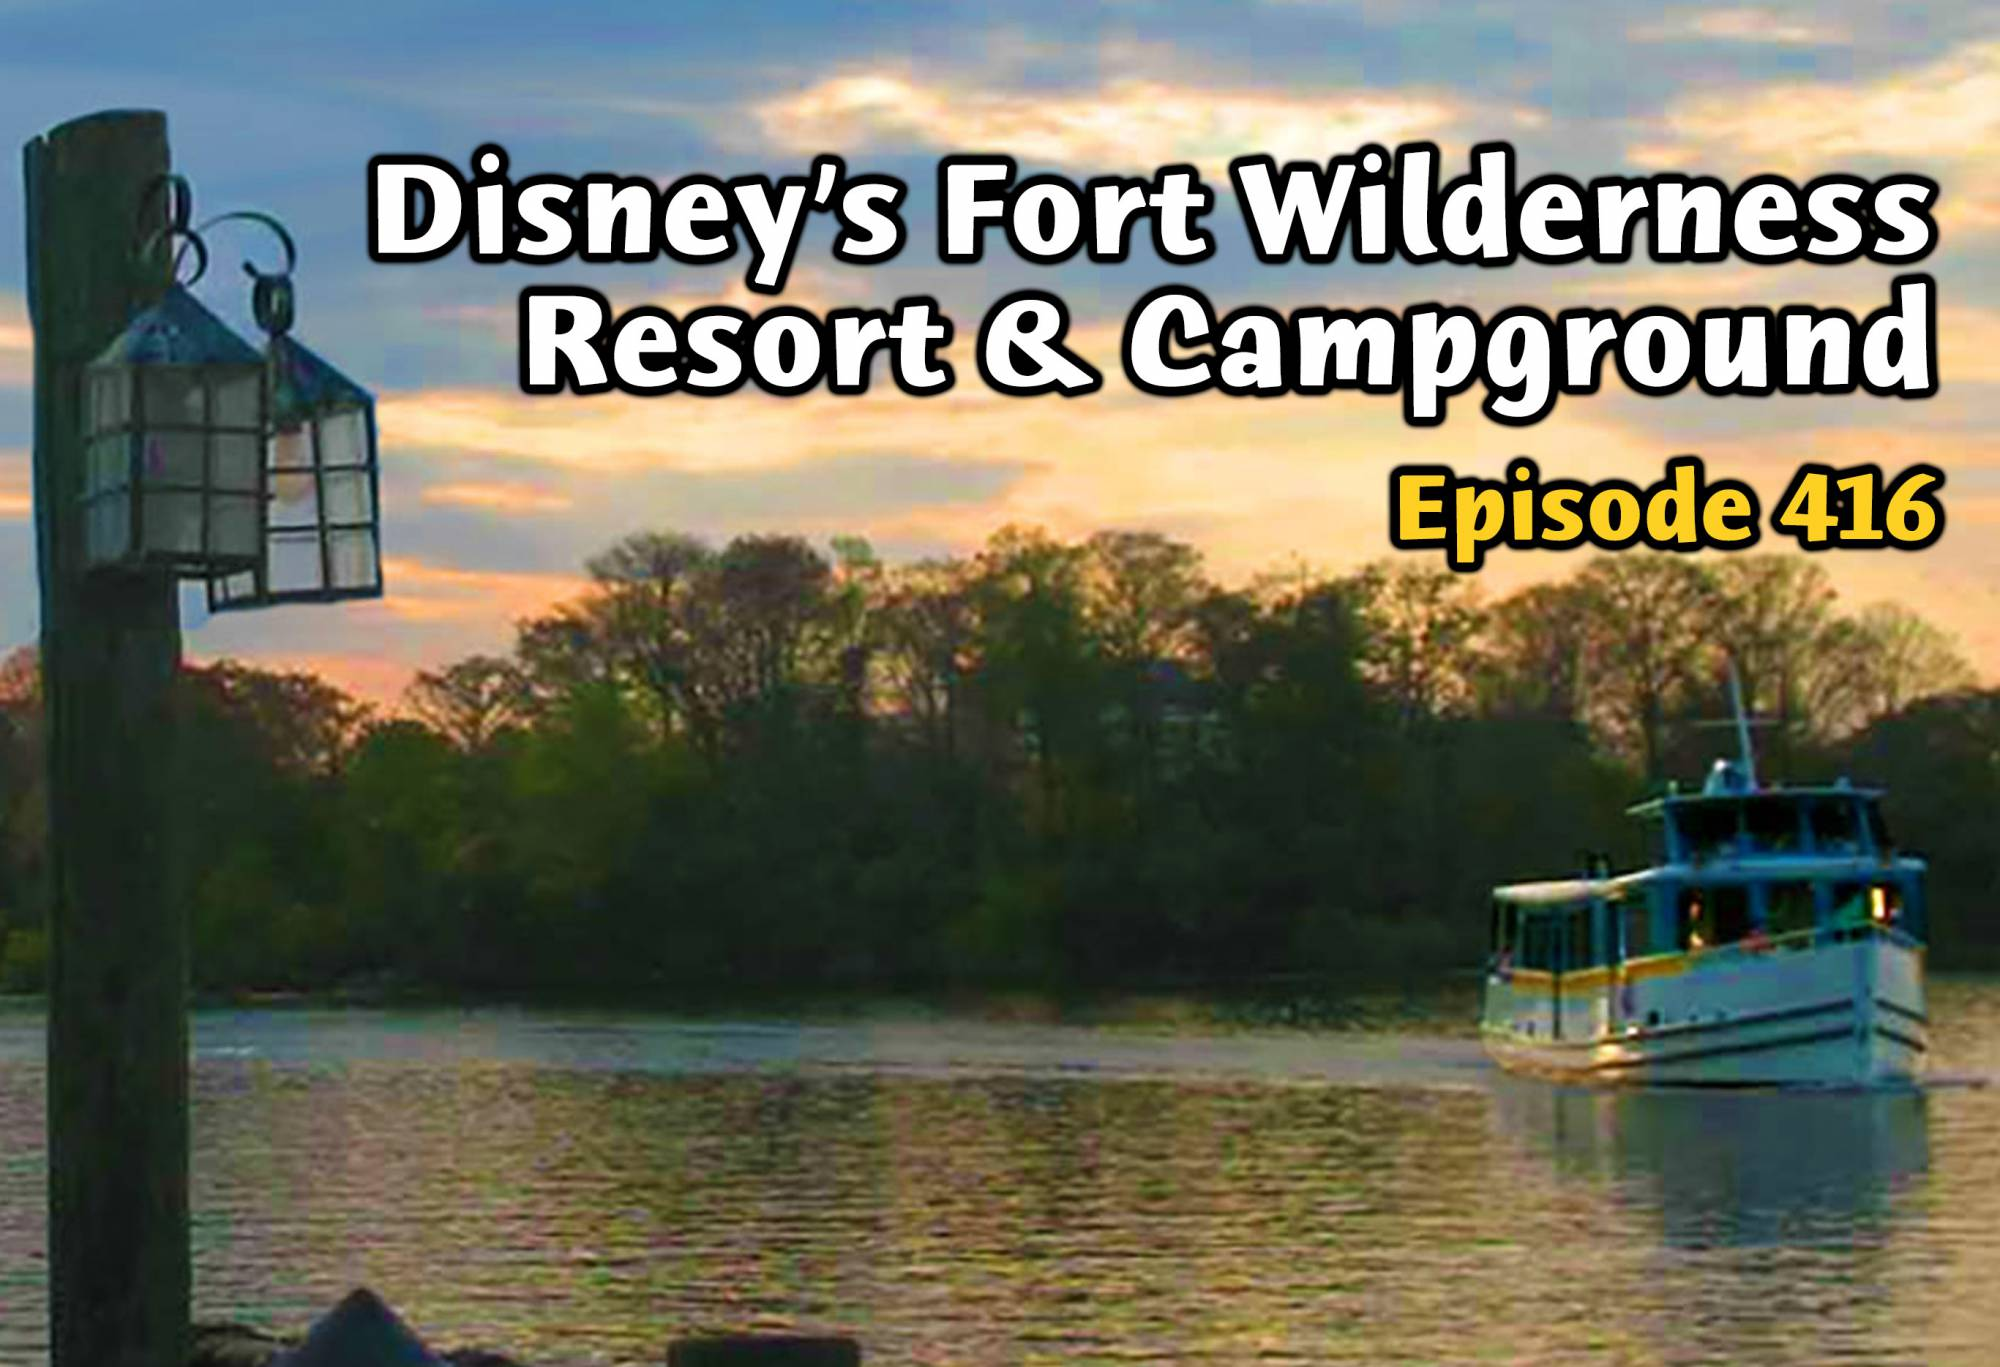 Disneys Fort Wilderness Resort & Campground